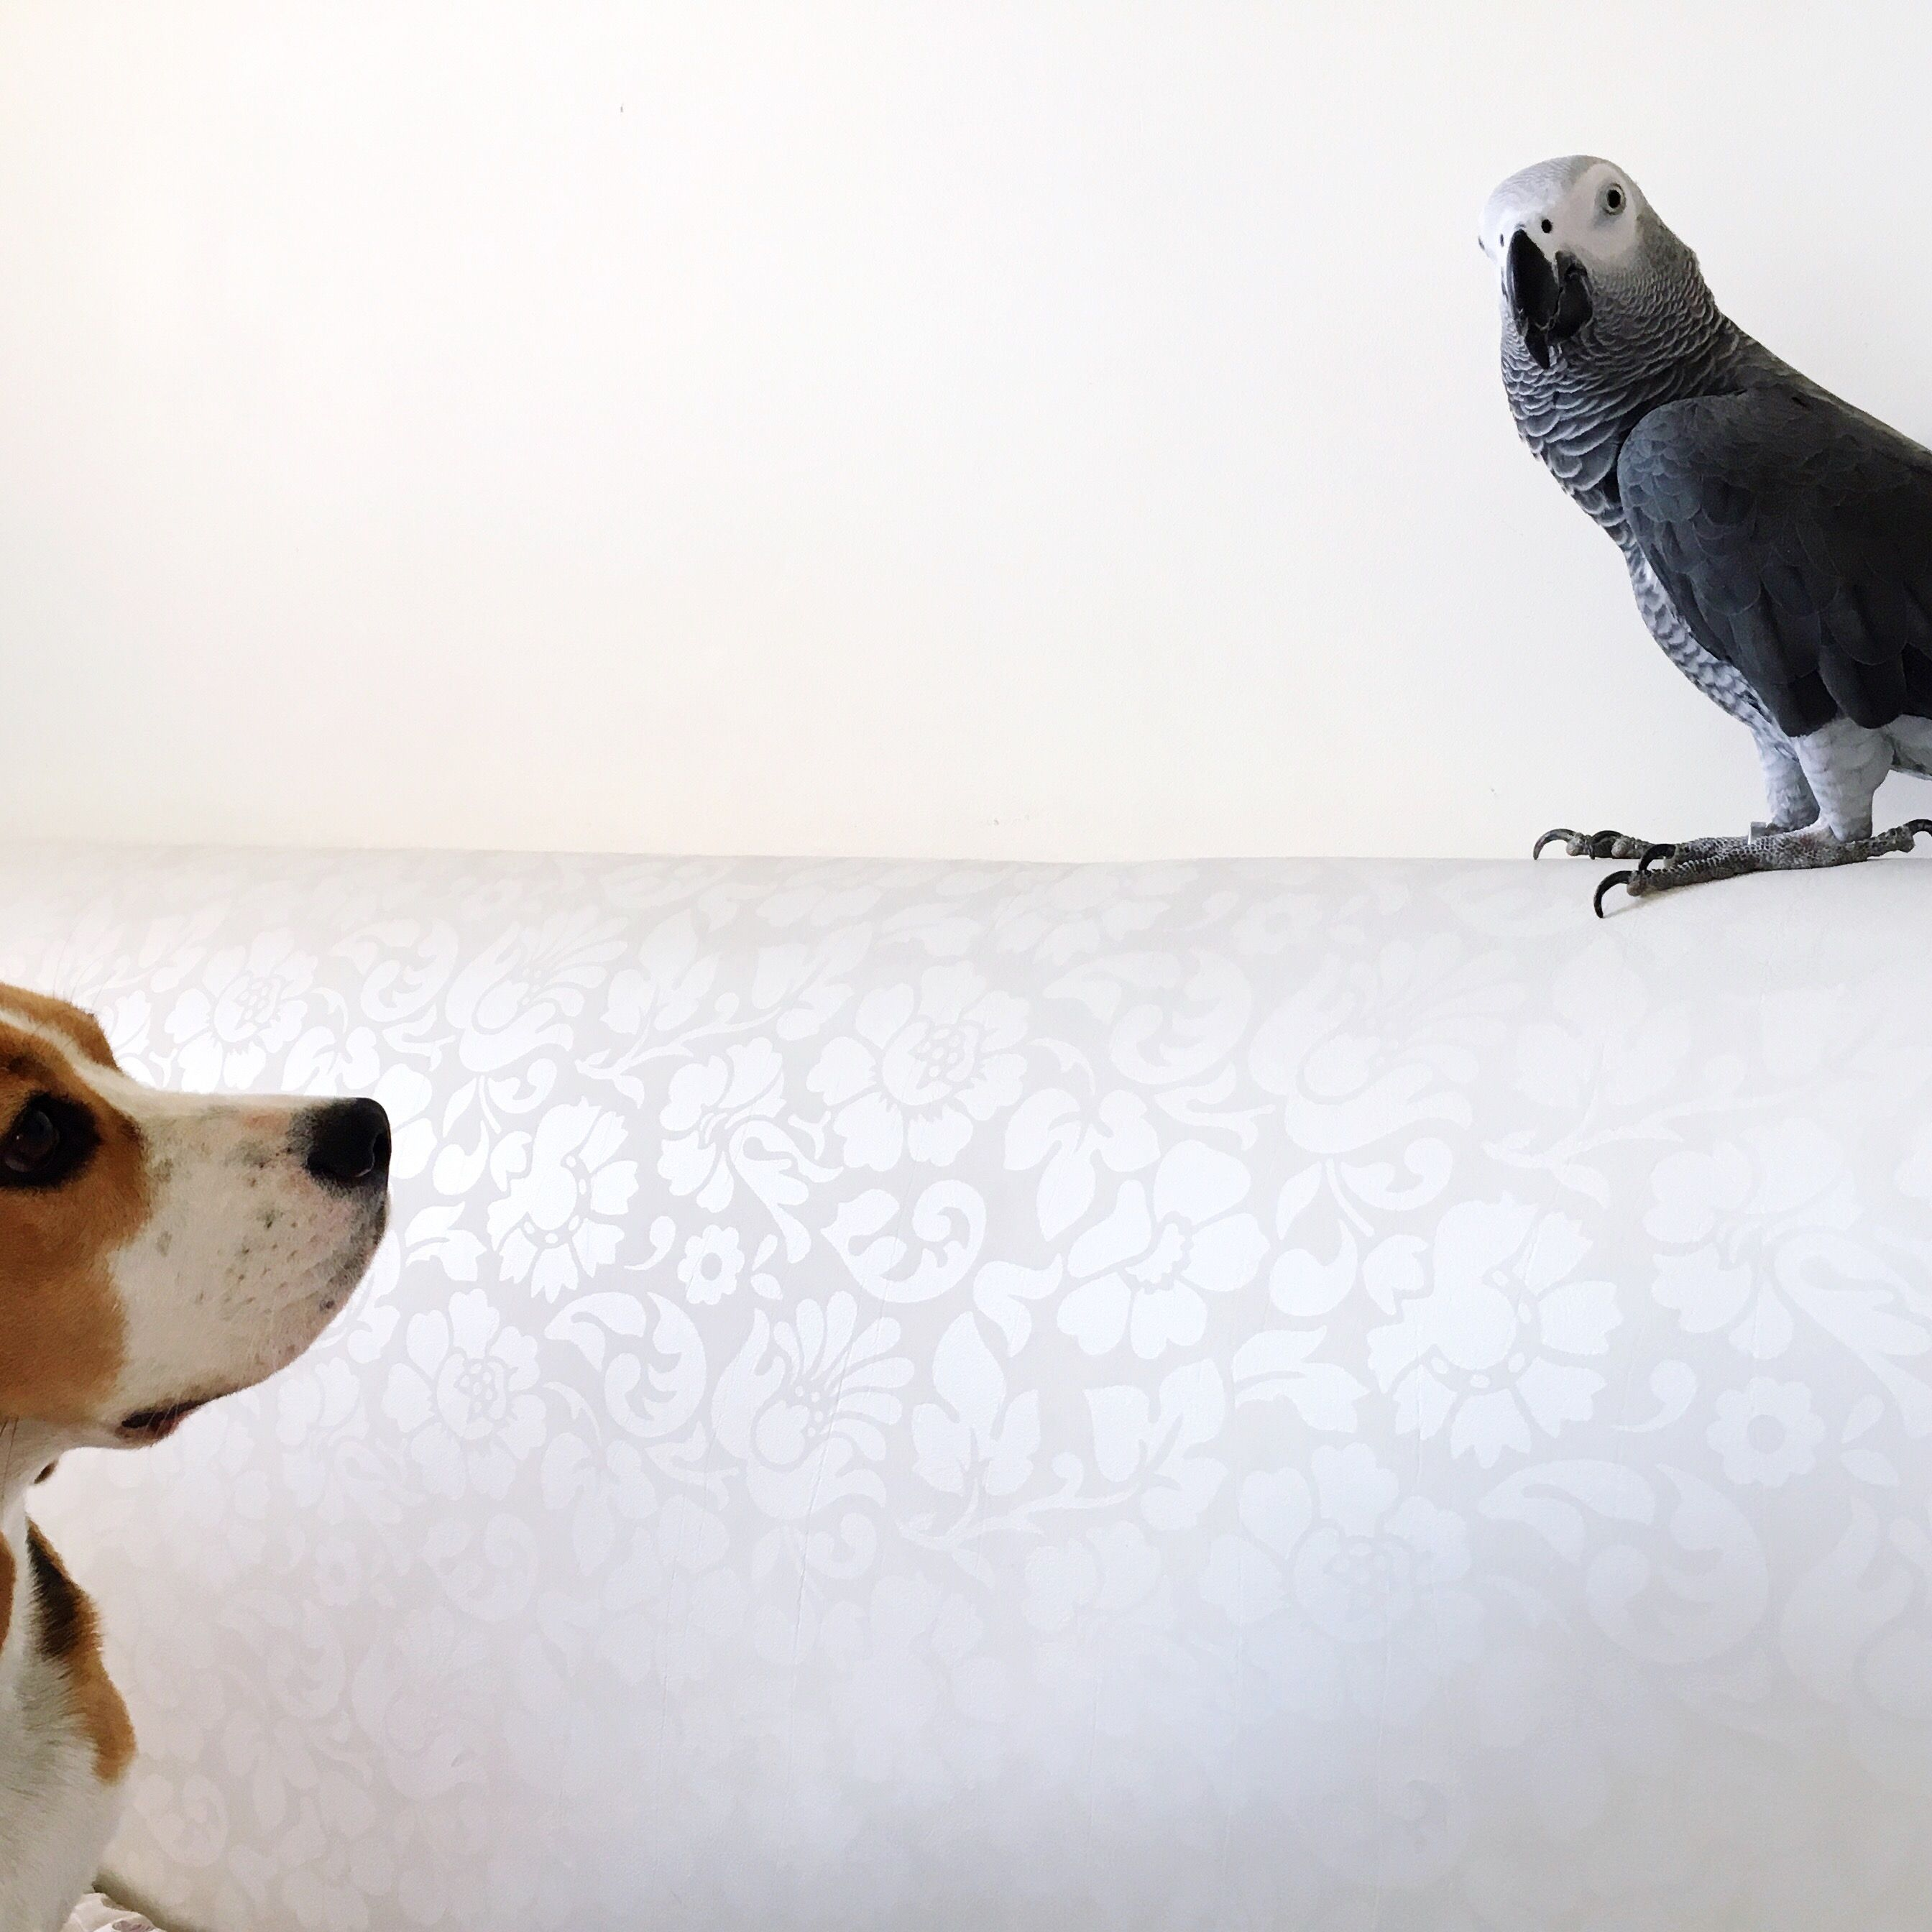 How to Train Your Dog to Be Around Pet Birds